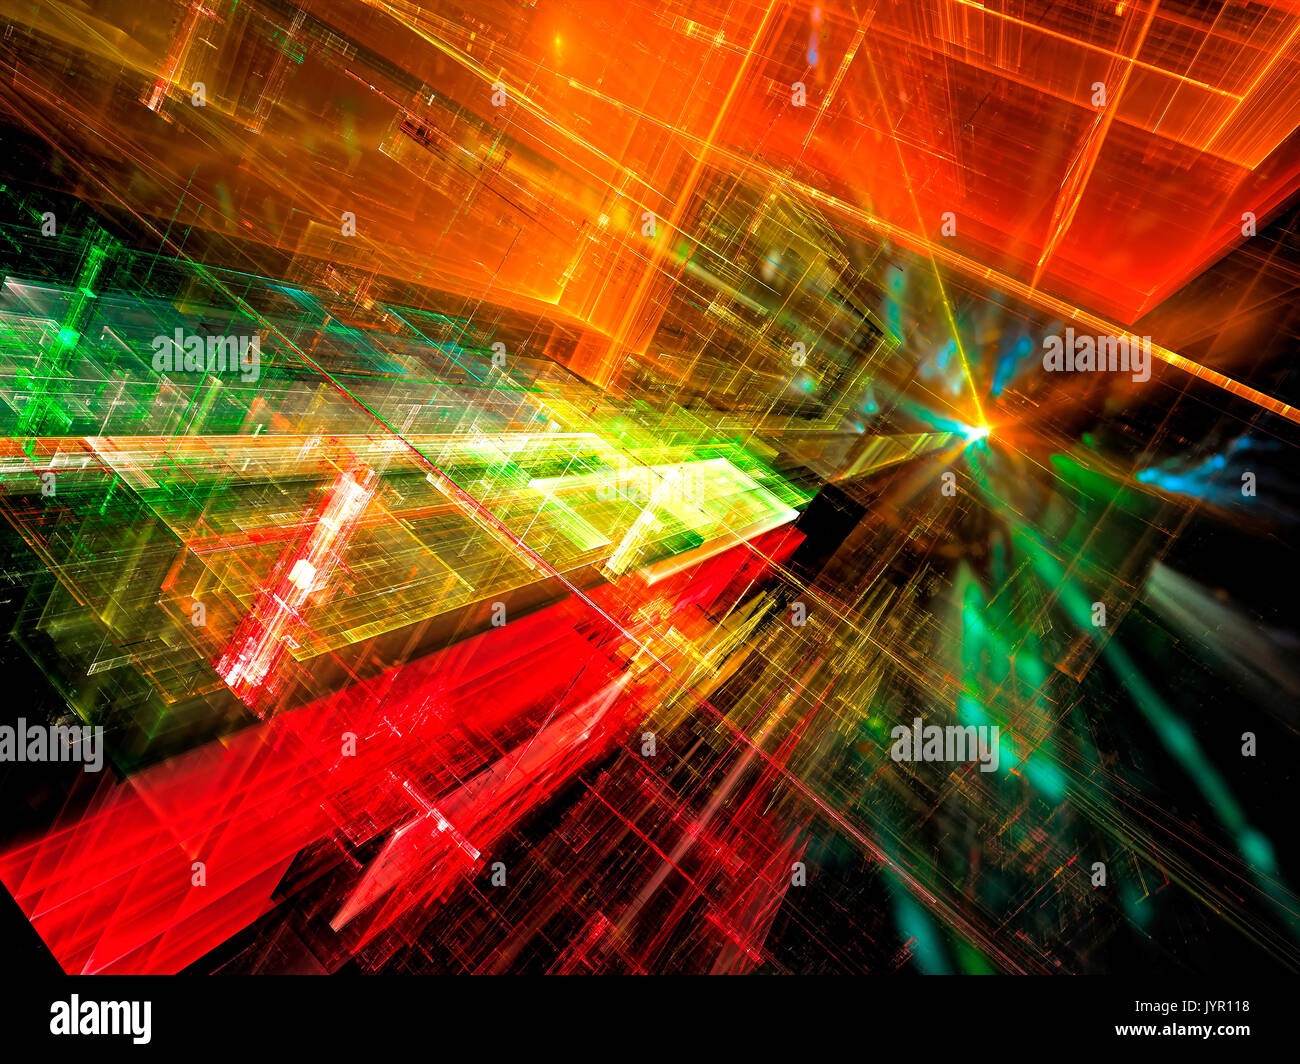 Sci fi background - abstract digitally generated image - Stock Image